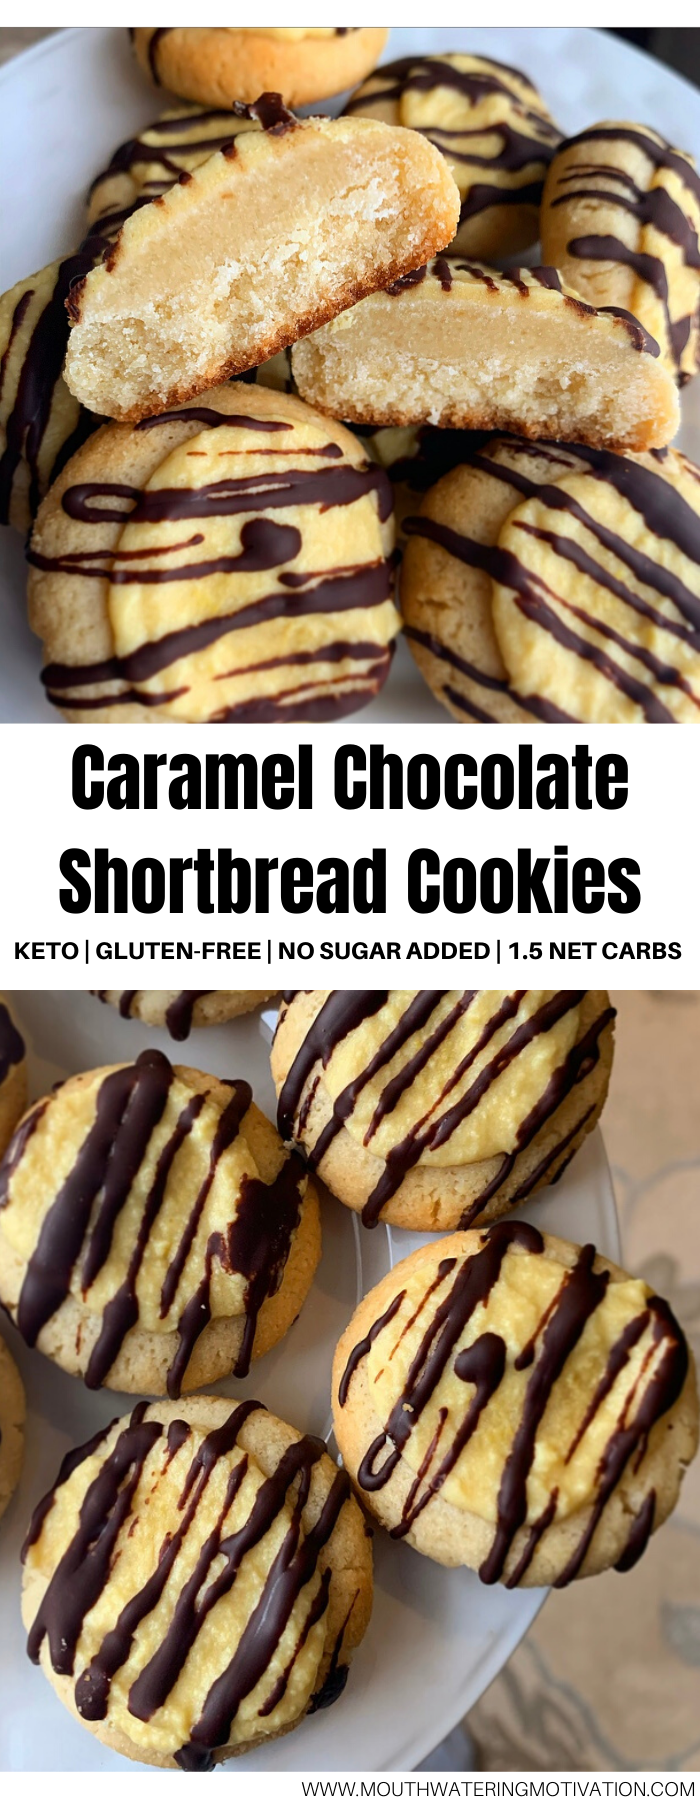 keto caramel chocolate shortbread cookies